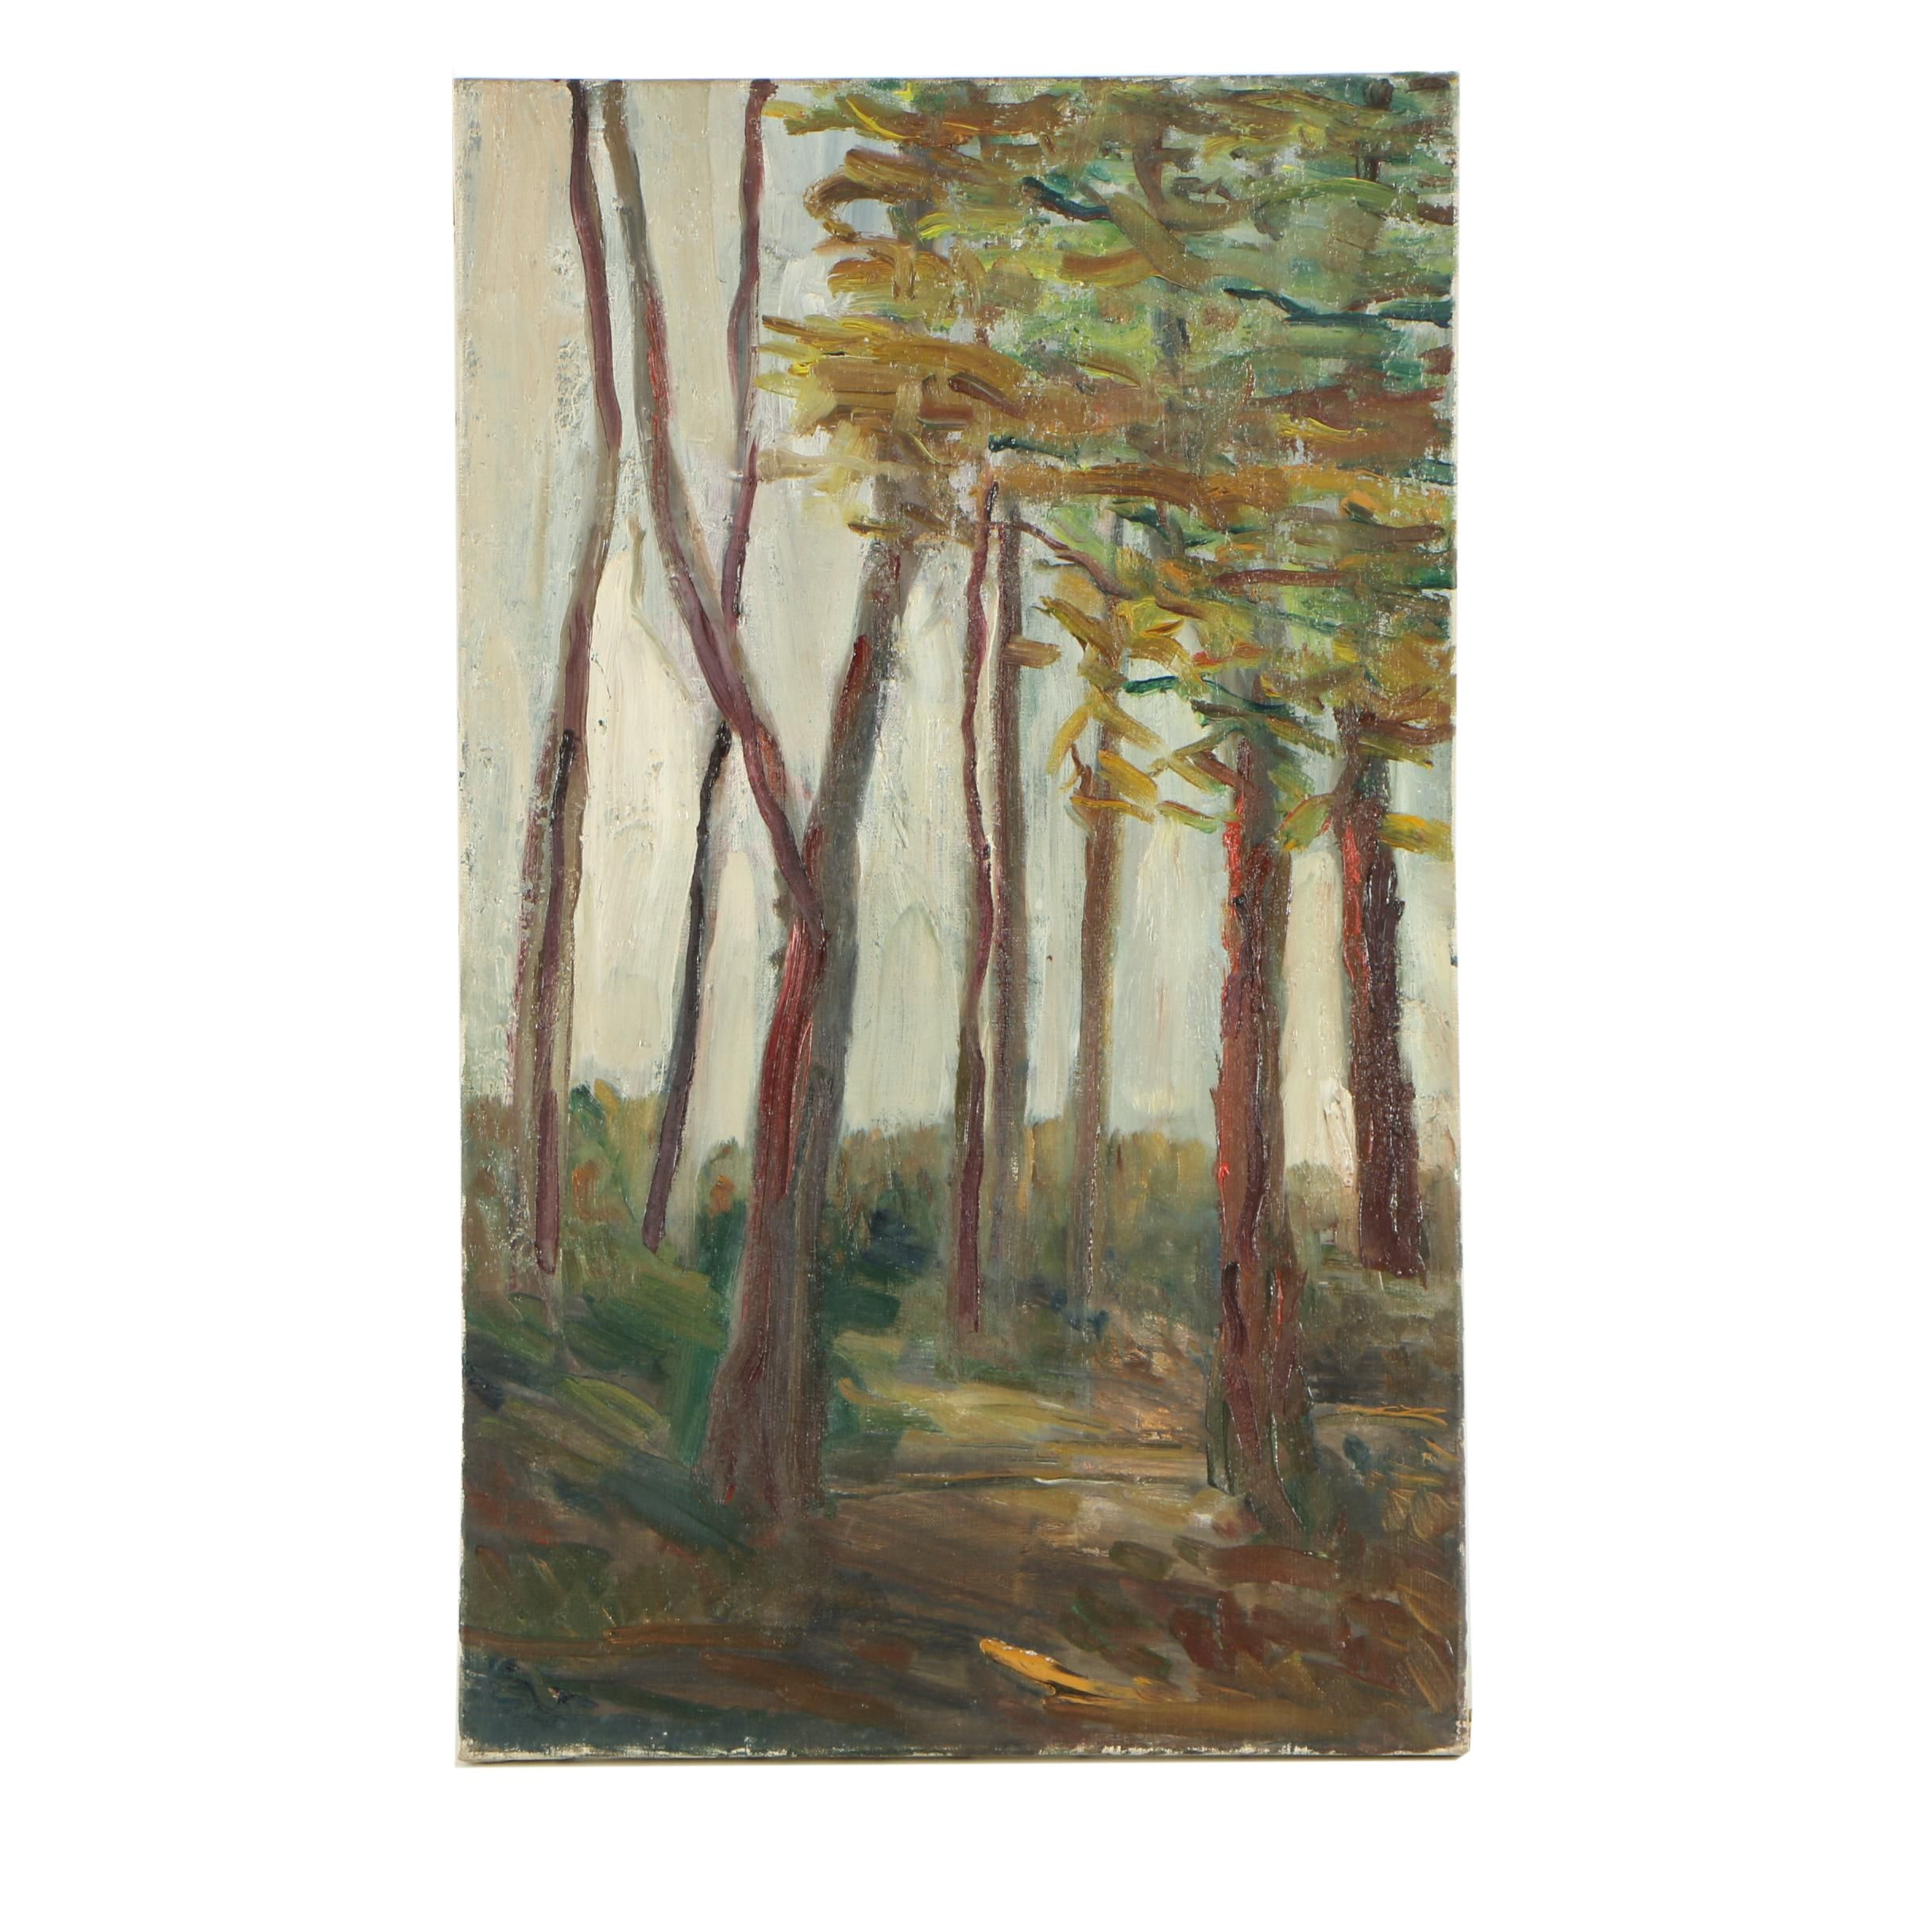 Oil Painting of a Grove of Trees